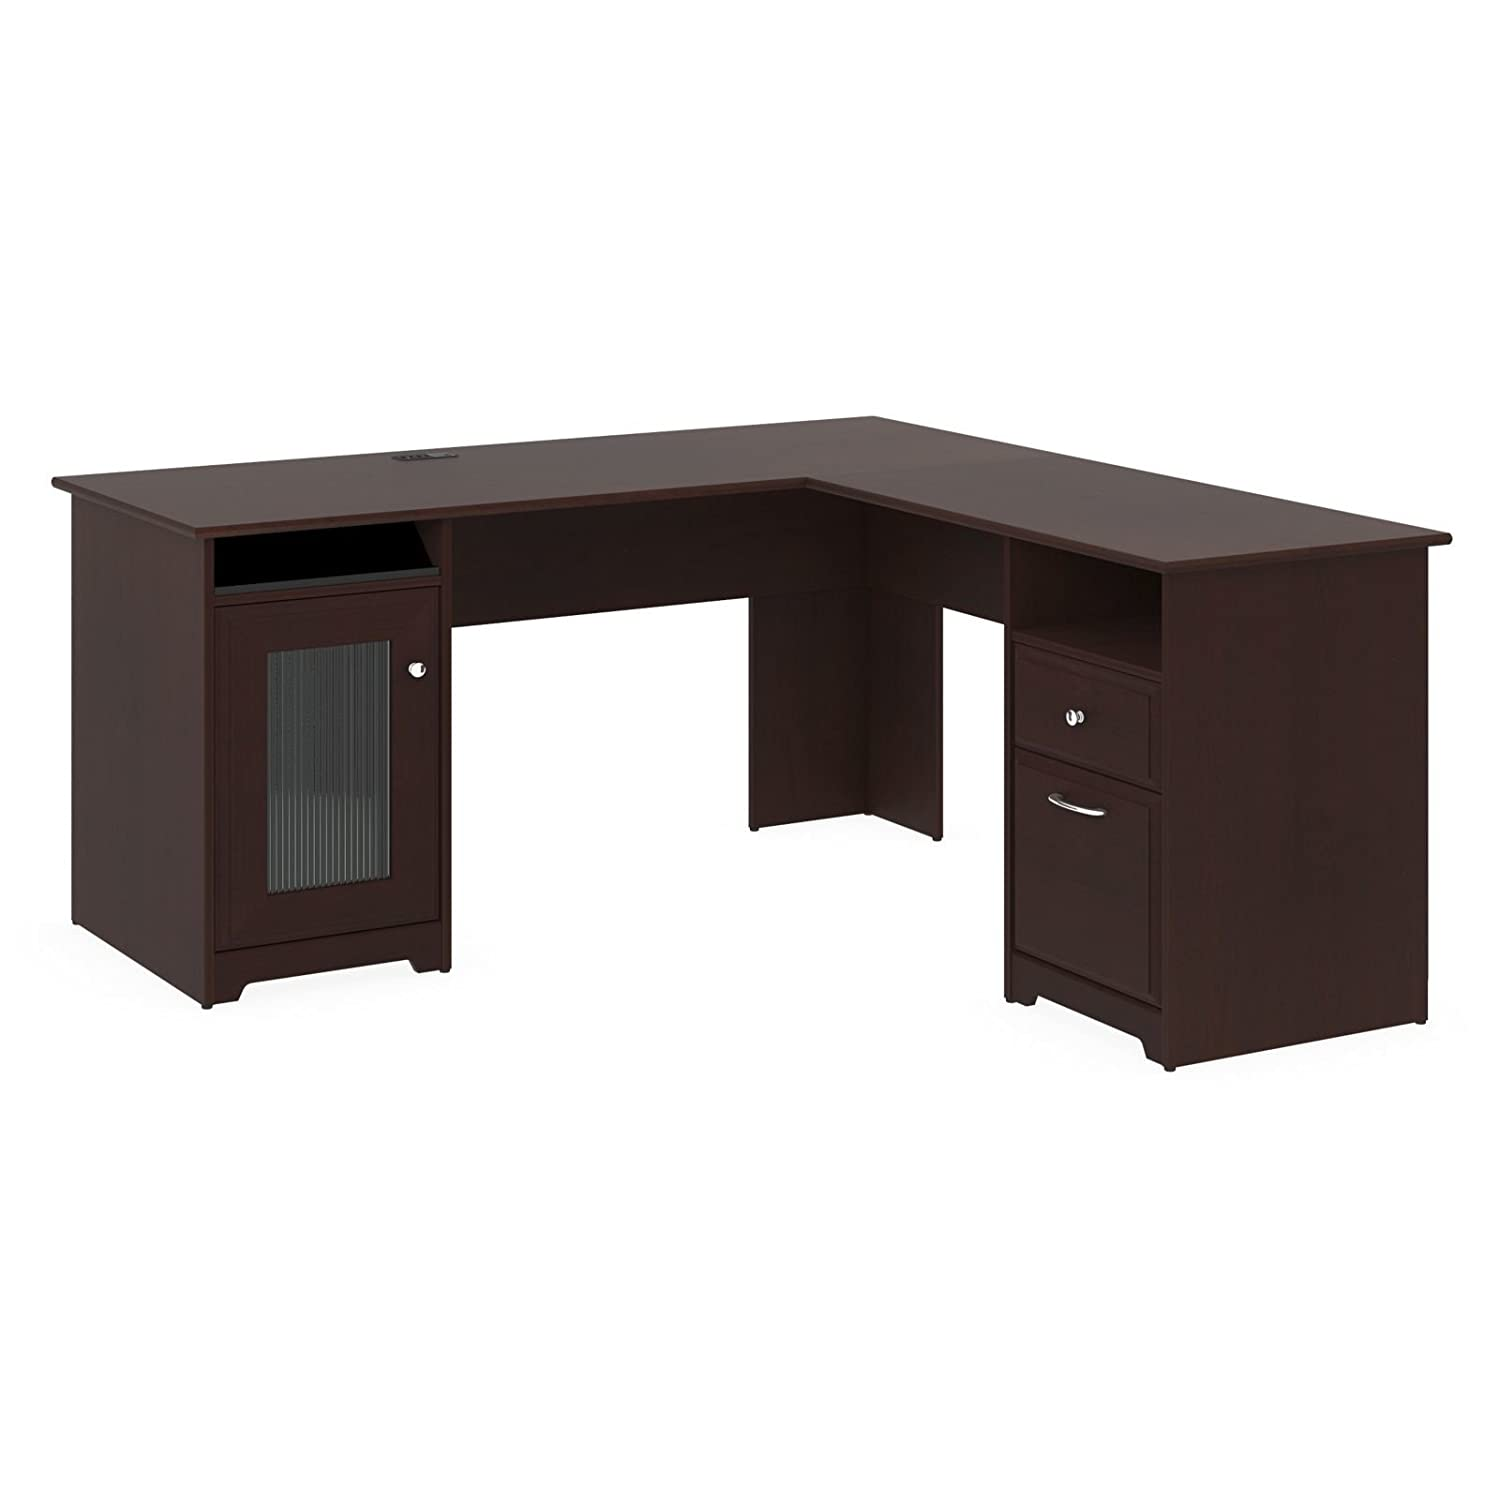 finishes desk com office storage walmart with l side ip multiple shaped